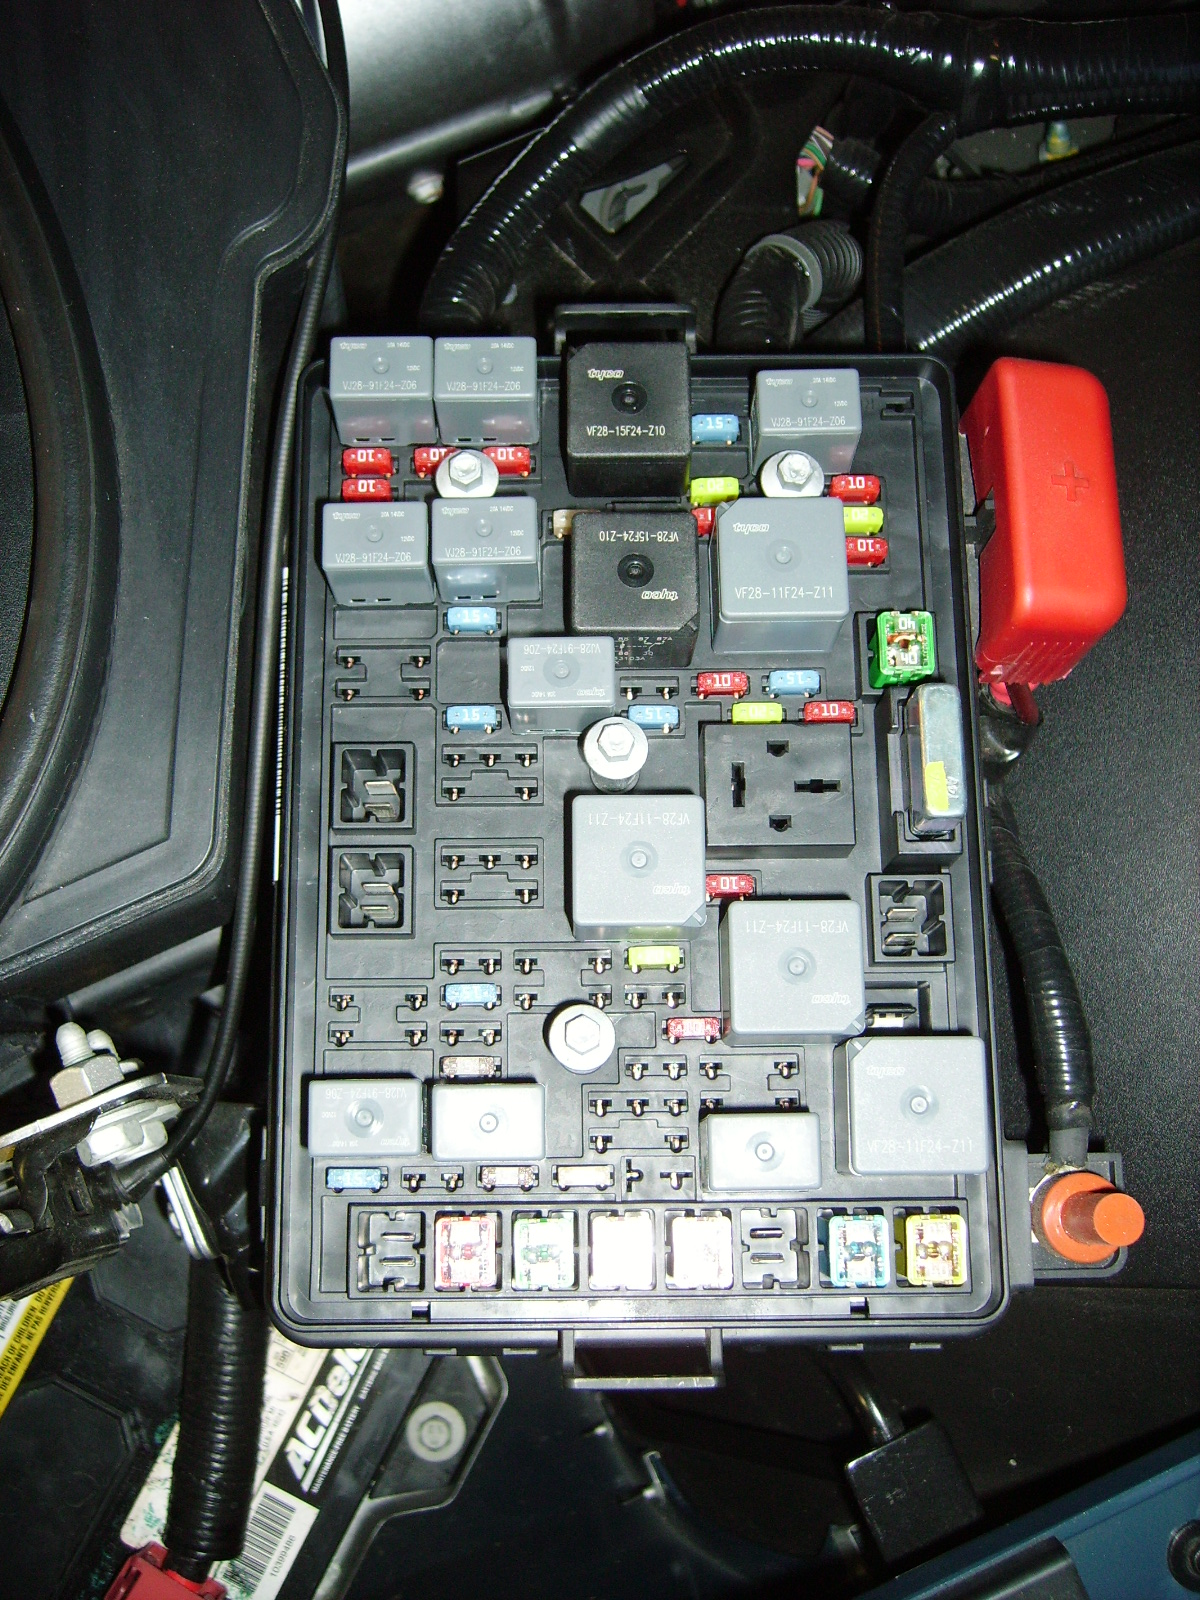 40354d1305120997 reverse light out fuse box under hood 07 saturn ion fuse box 2004 saturn ion spoiler \u2022 wiring diagrams 2005 f350 under hood fuse panel diagram at mifinder.co